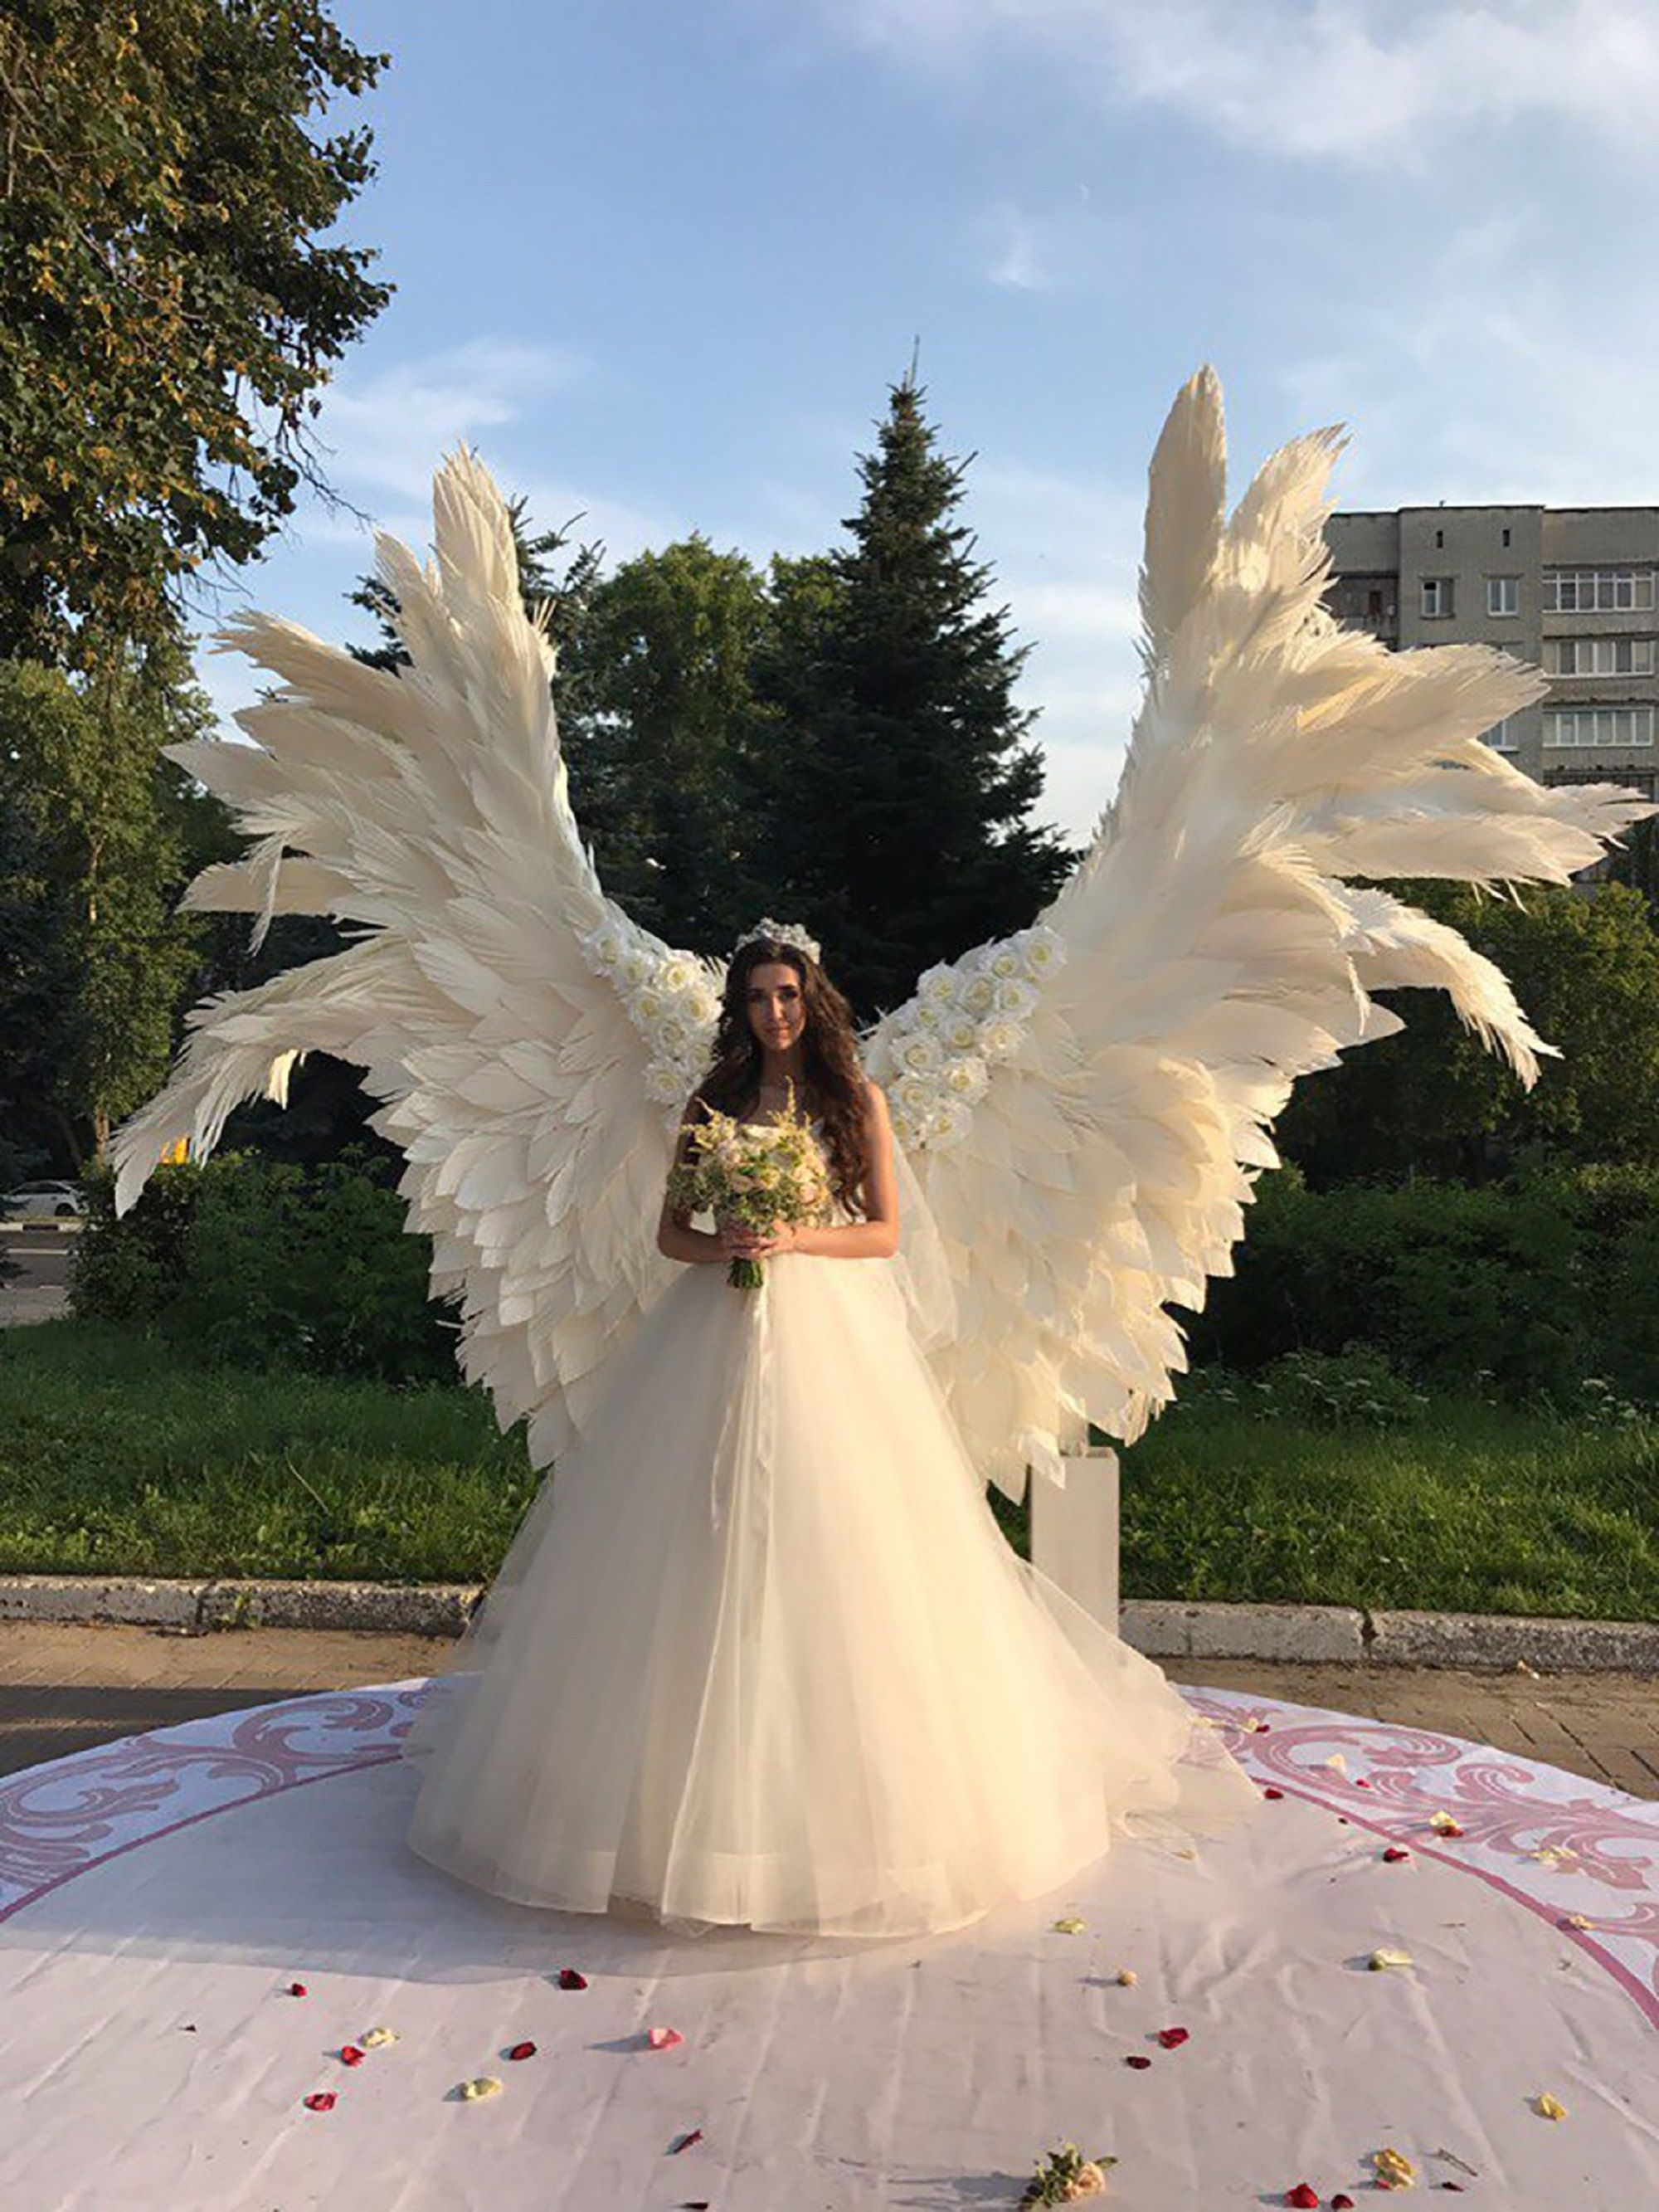 Giant Angel Wings White Background At The Wedding Ceremony Etsy In 2020 Wedding Angels Outdoor Wedding Decorations Wedding Backdrop